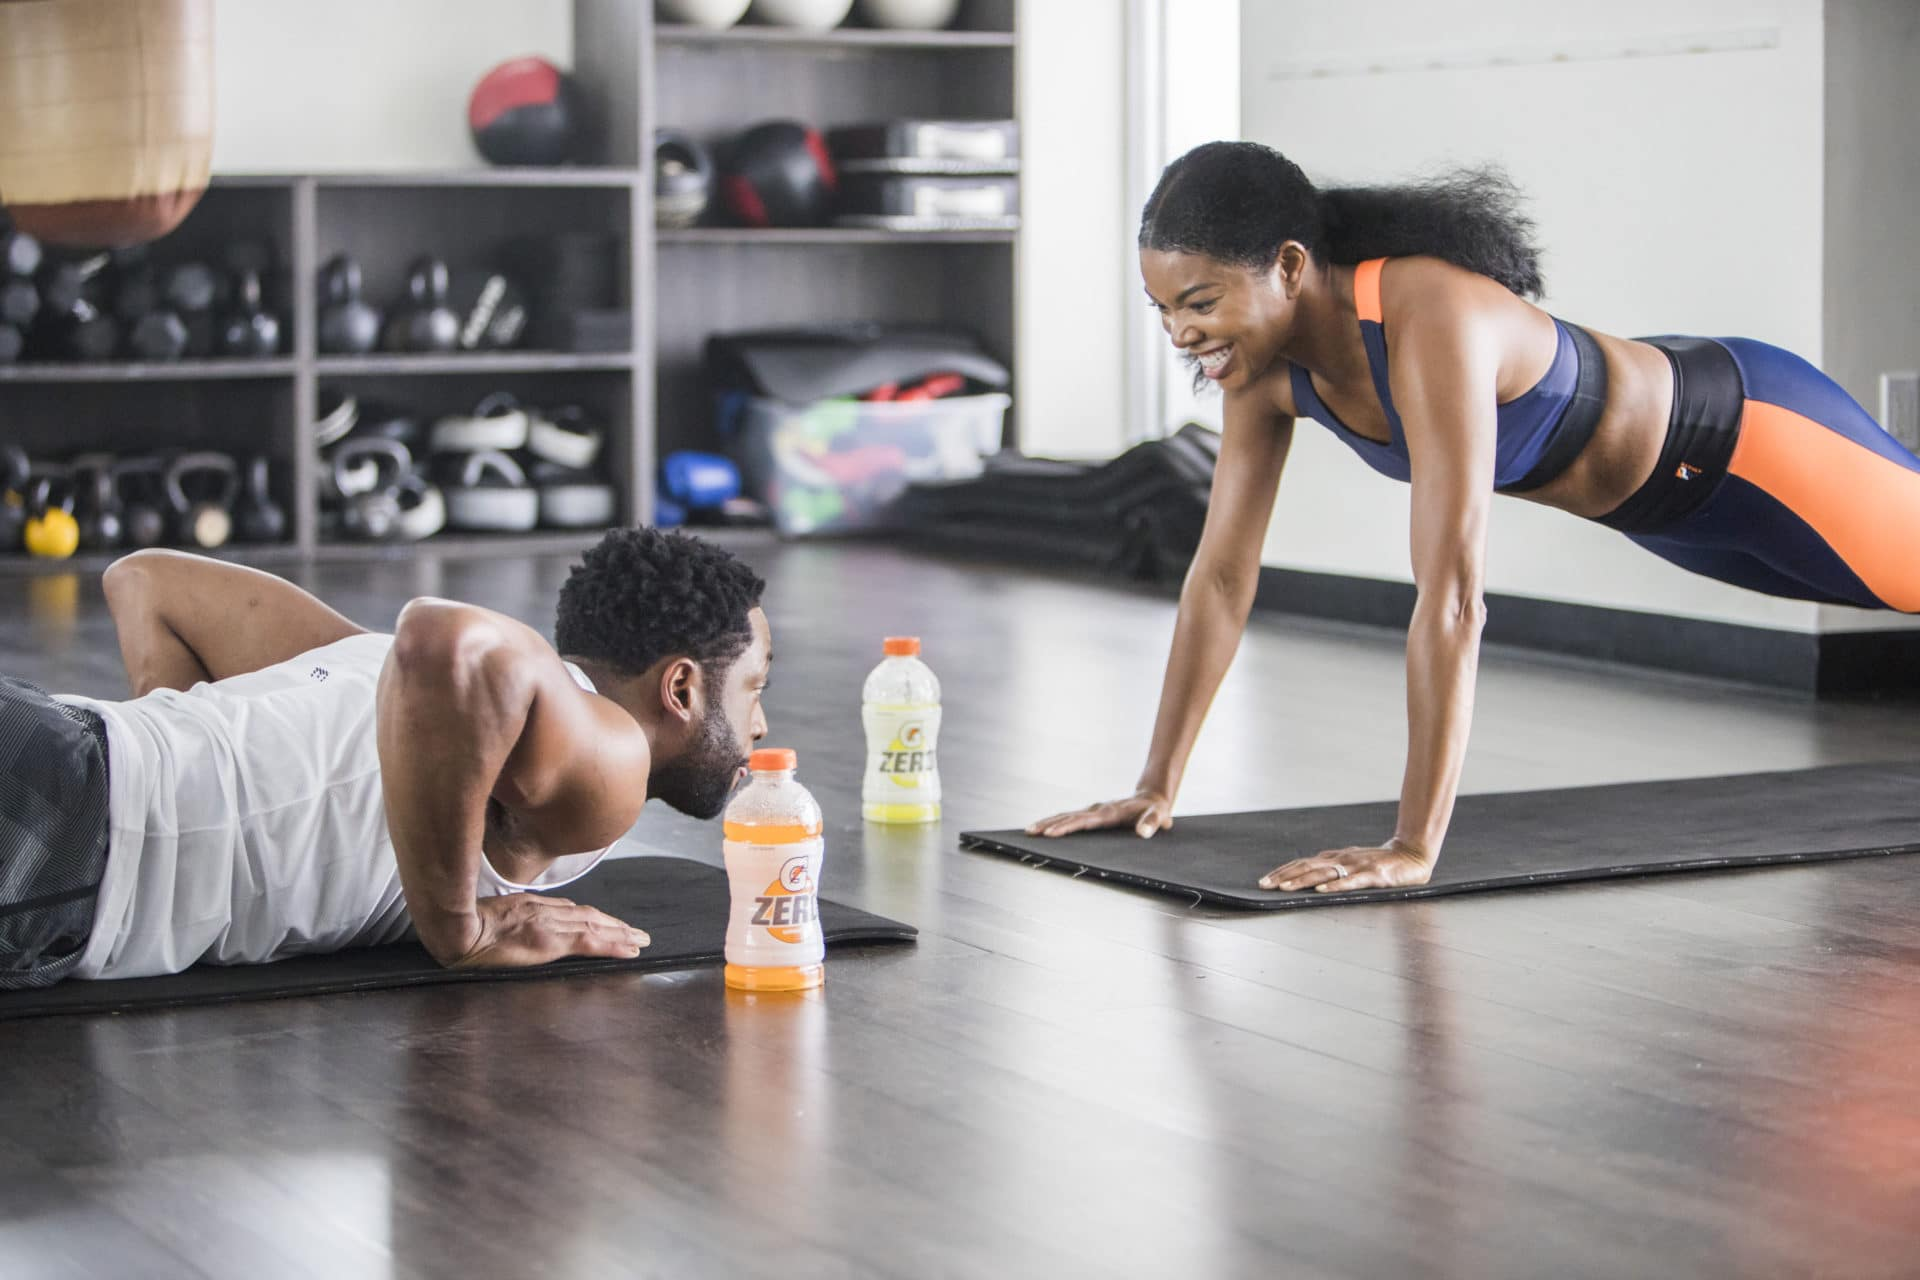 Exclusive: Gabrielle Union and Dwyane Wade Go To Battle In Hilarious New Gatorade Zero Commercial